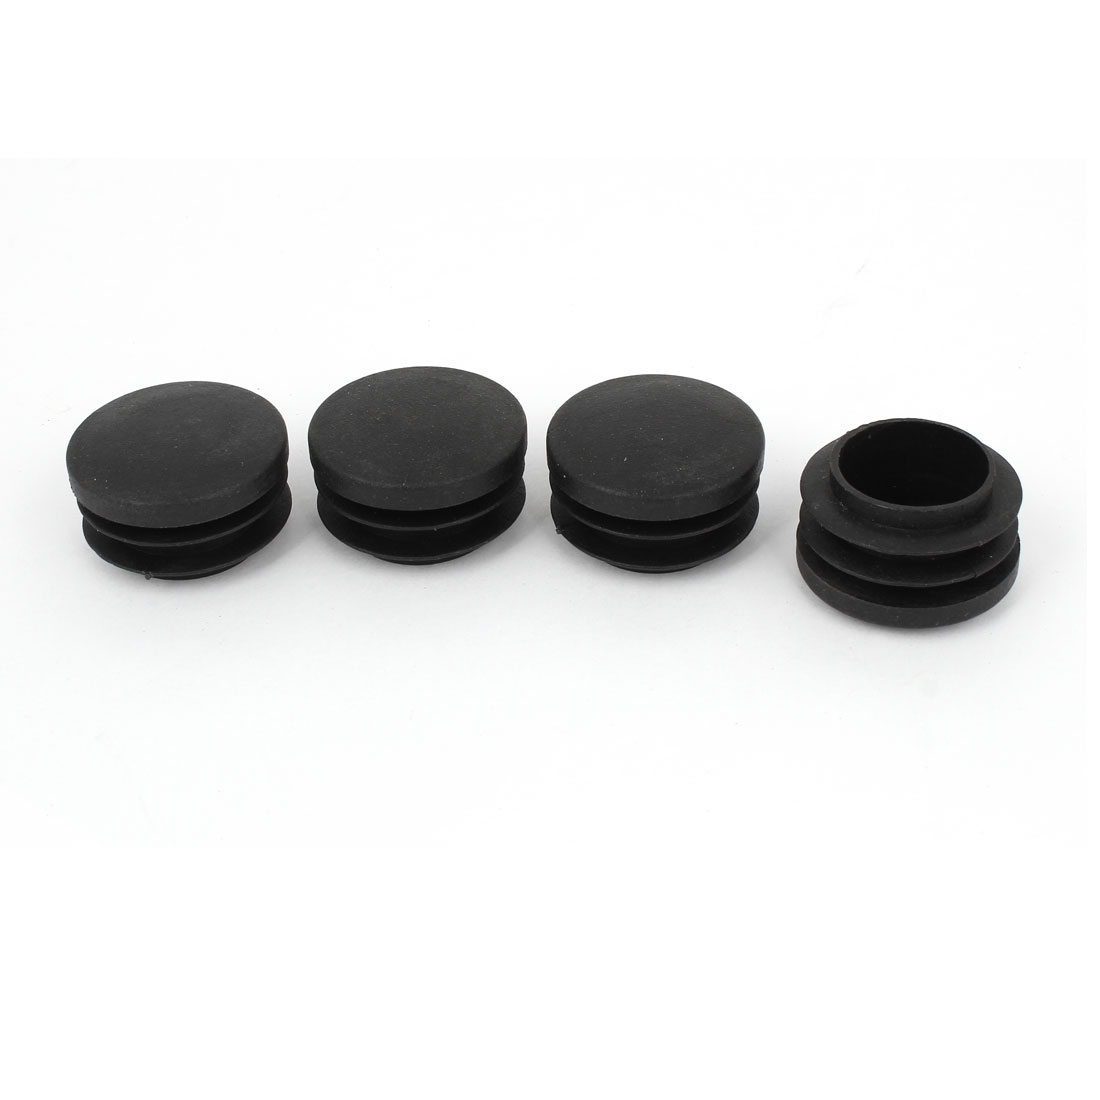 23mm x 35mm Black Plastic Blanking End Caps Round Tube Insert Plug Bung 4 Pcs